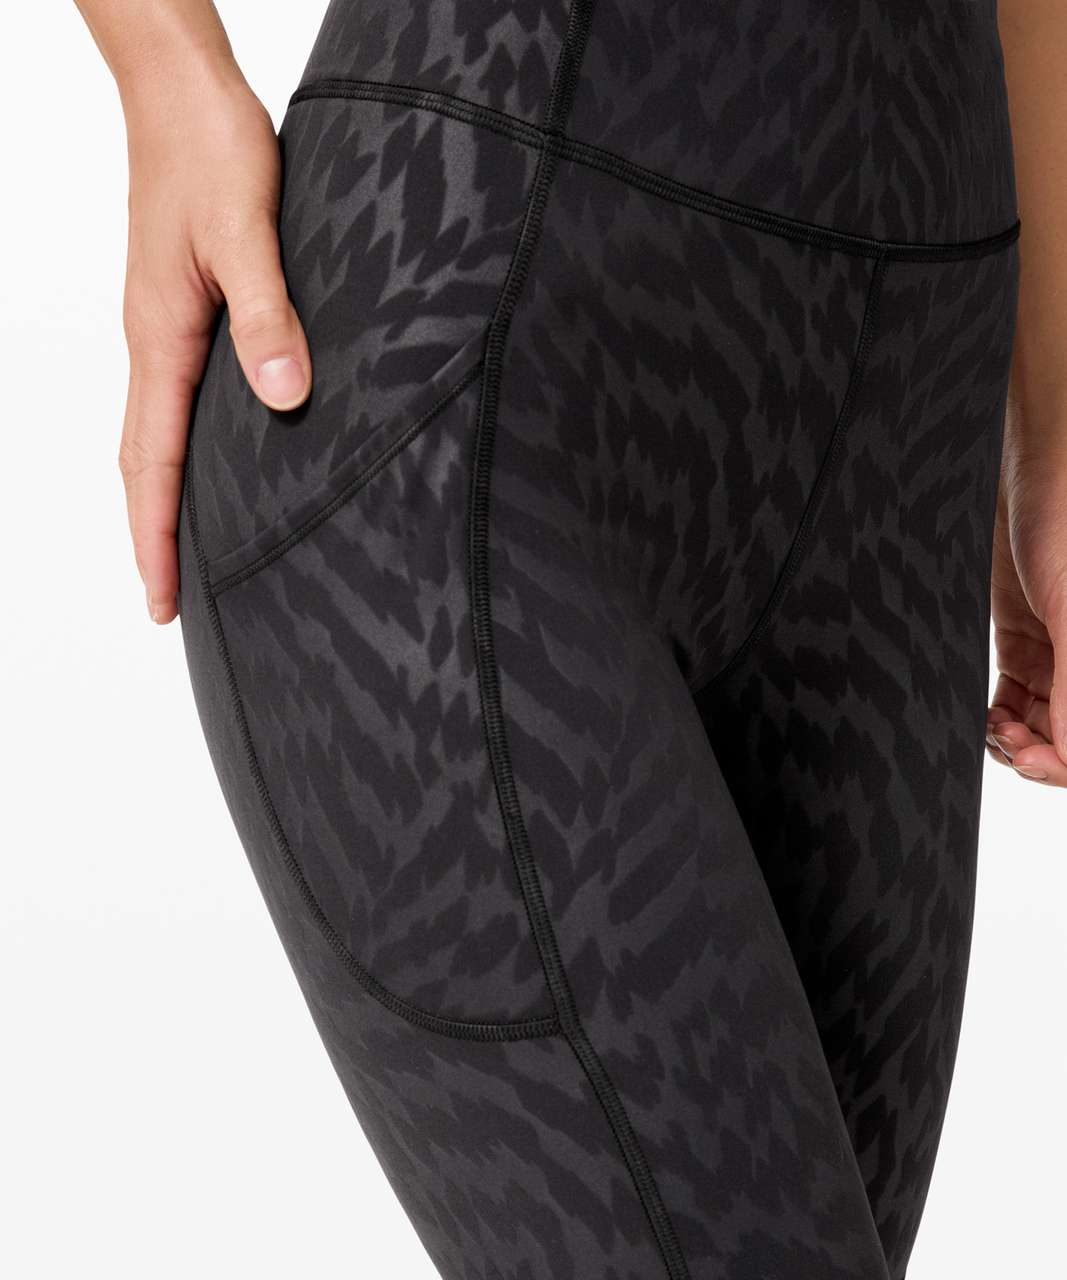 "Lululemon Invigorate High-Rise Short 10"" - Voltage Mini Emboss Black"